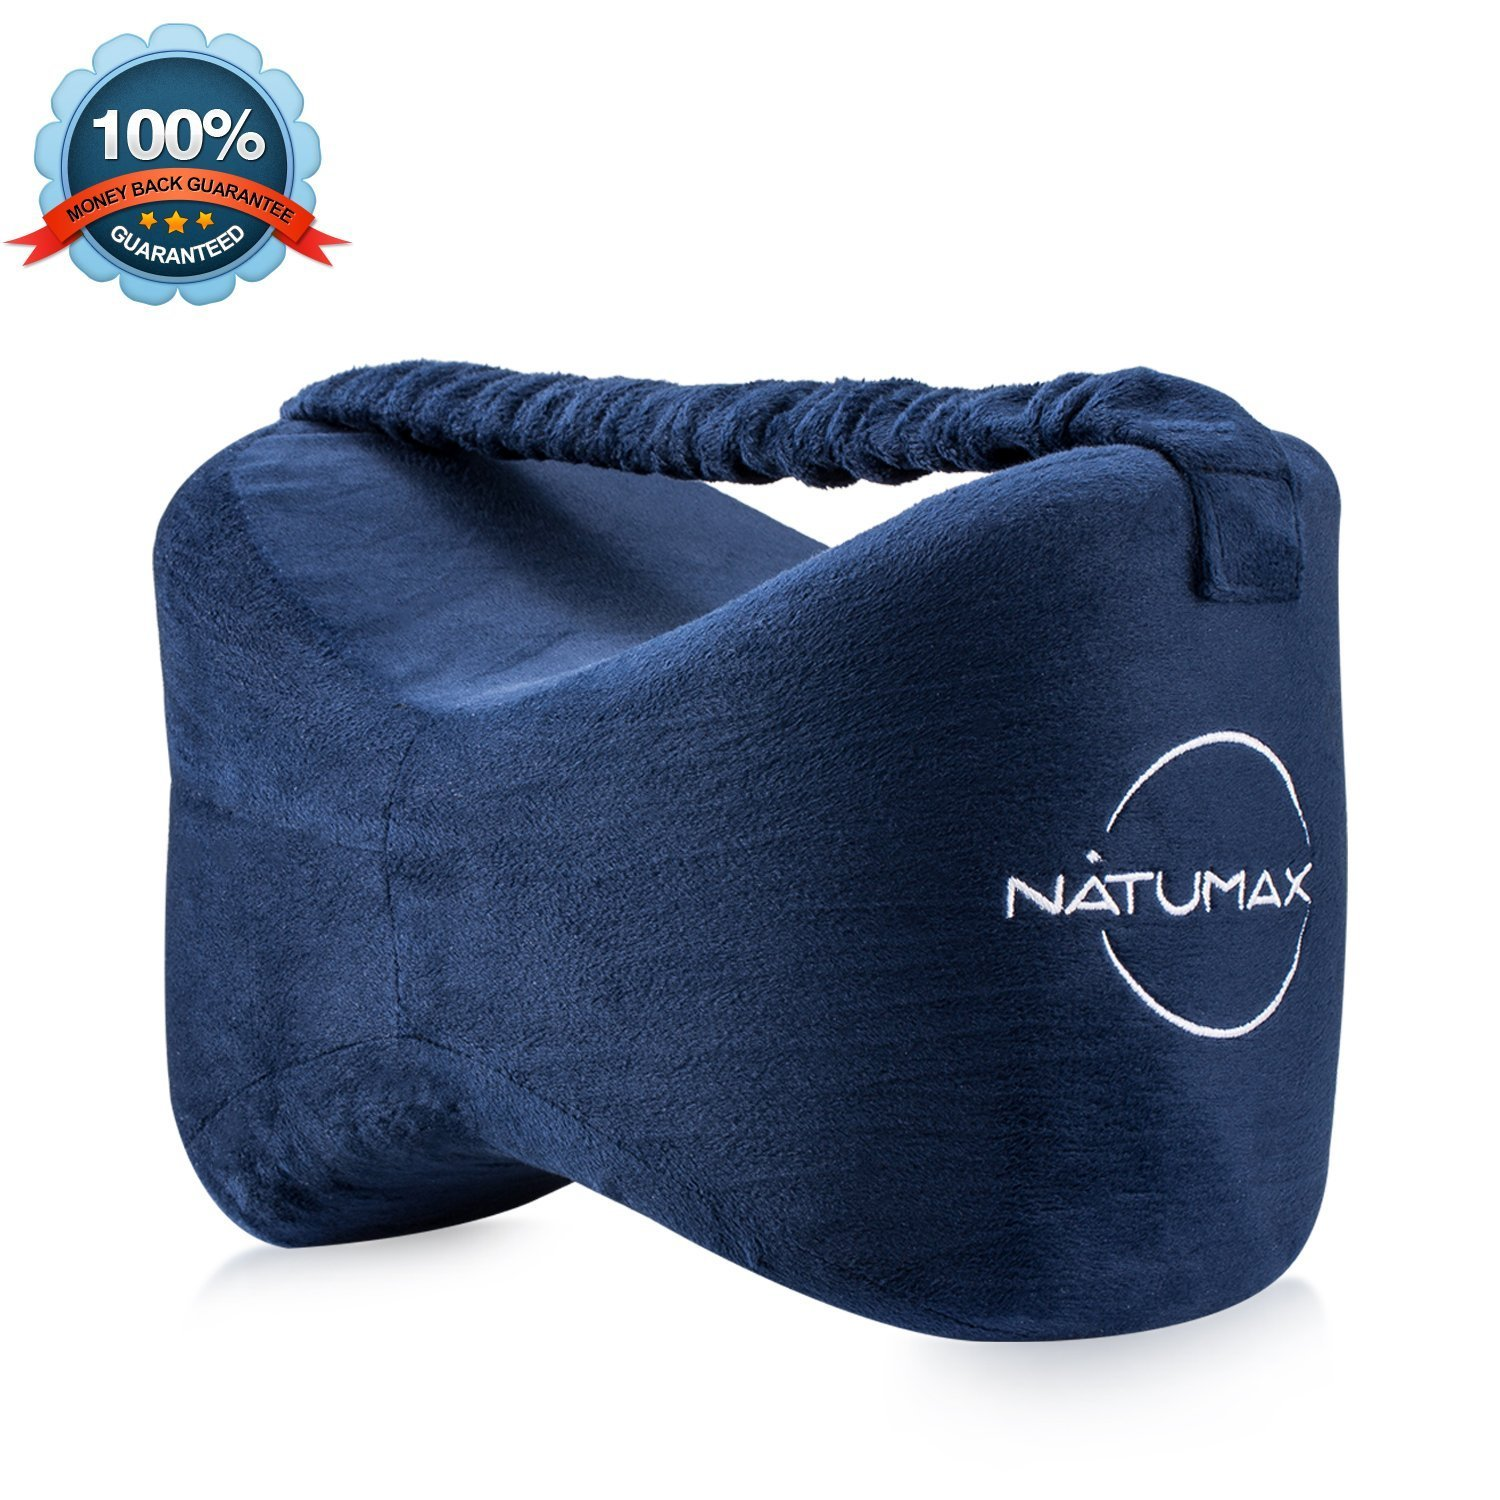 NATUMAX Knee Pillow for Side Sleepers - Sciatica Pain Relief - Back Pain, Leg Pain, Pregnancy, Hip and Joint Pain Memory Foam Leg Pillow with Washable Cover + Free Sleep Mask and Ear Plugs by NATUMAX (Image #7)